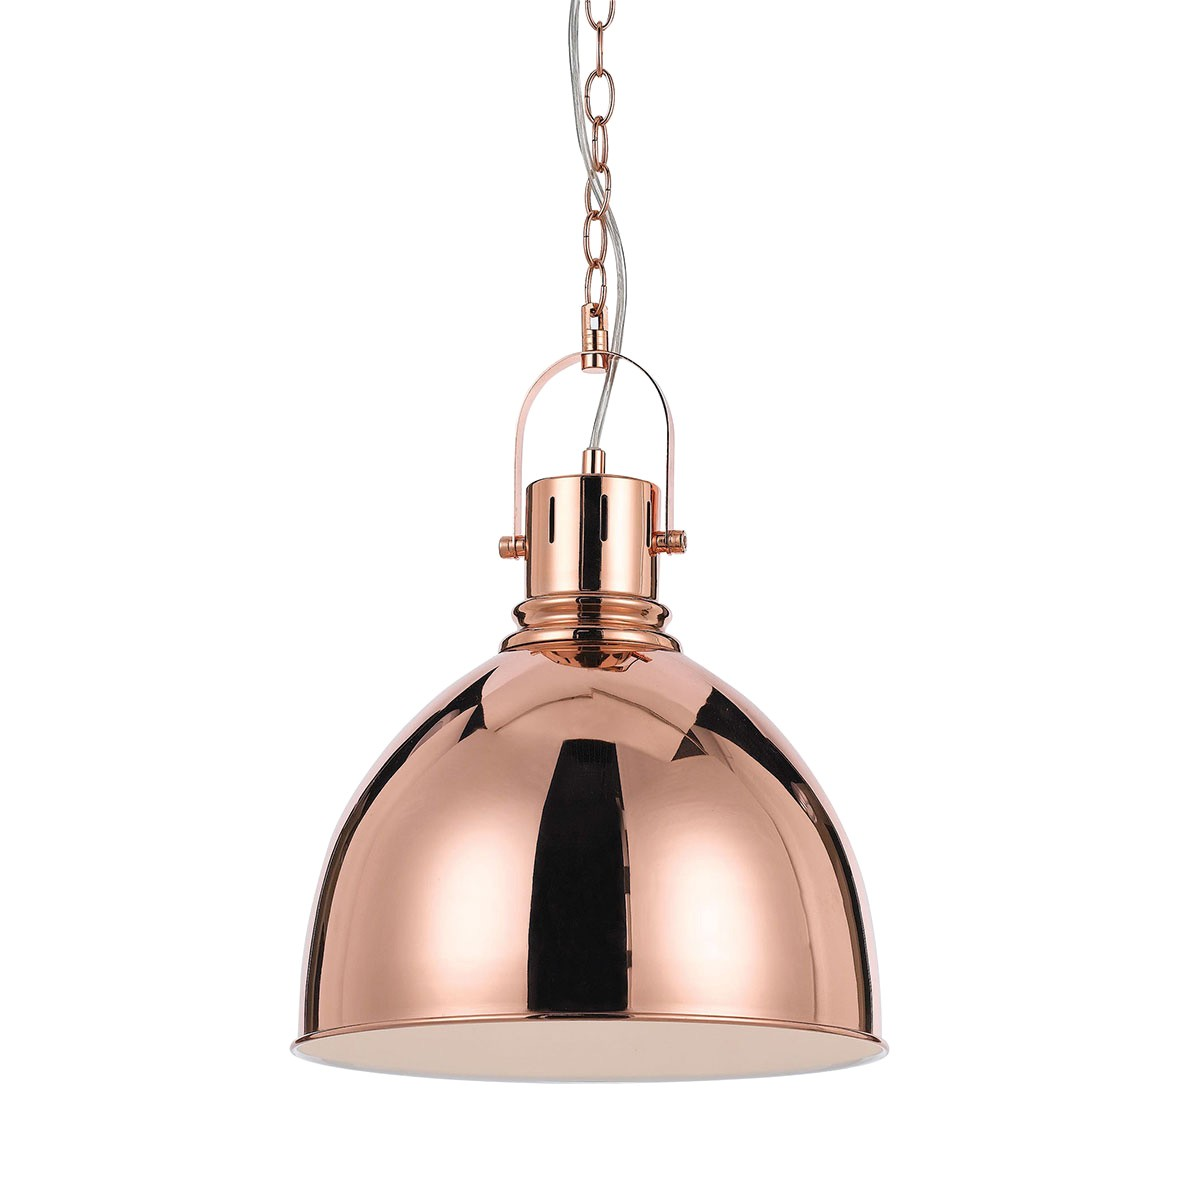 Market Metal Pendant Light, Copper